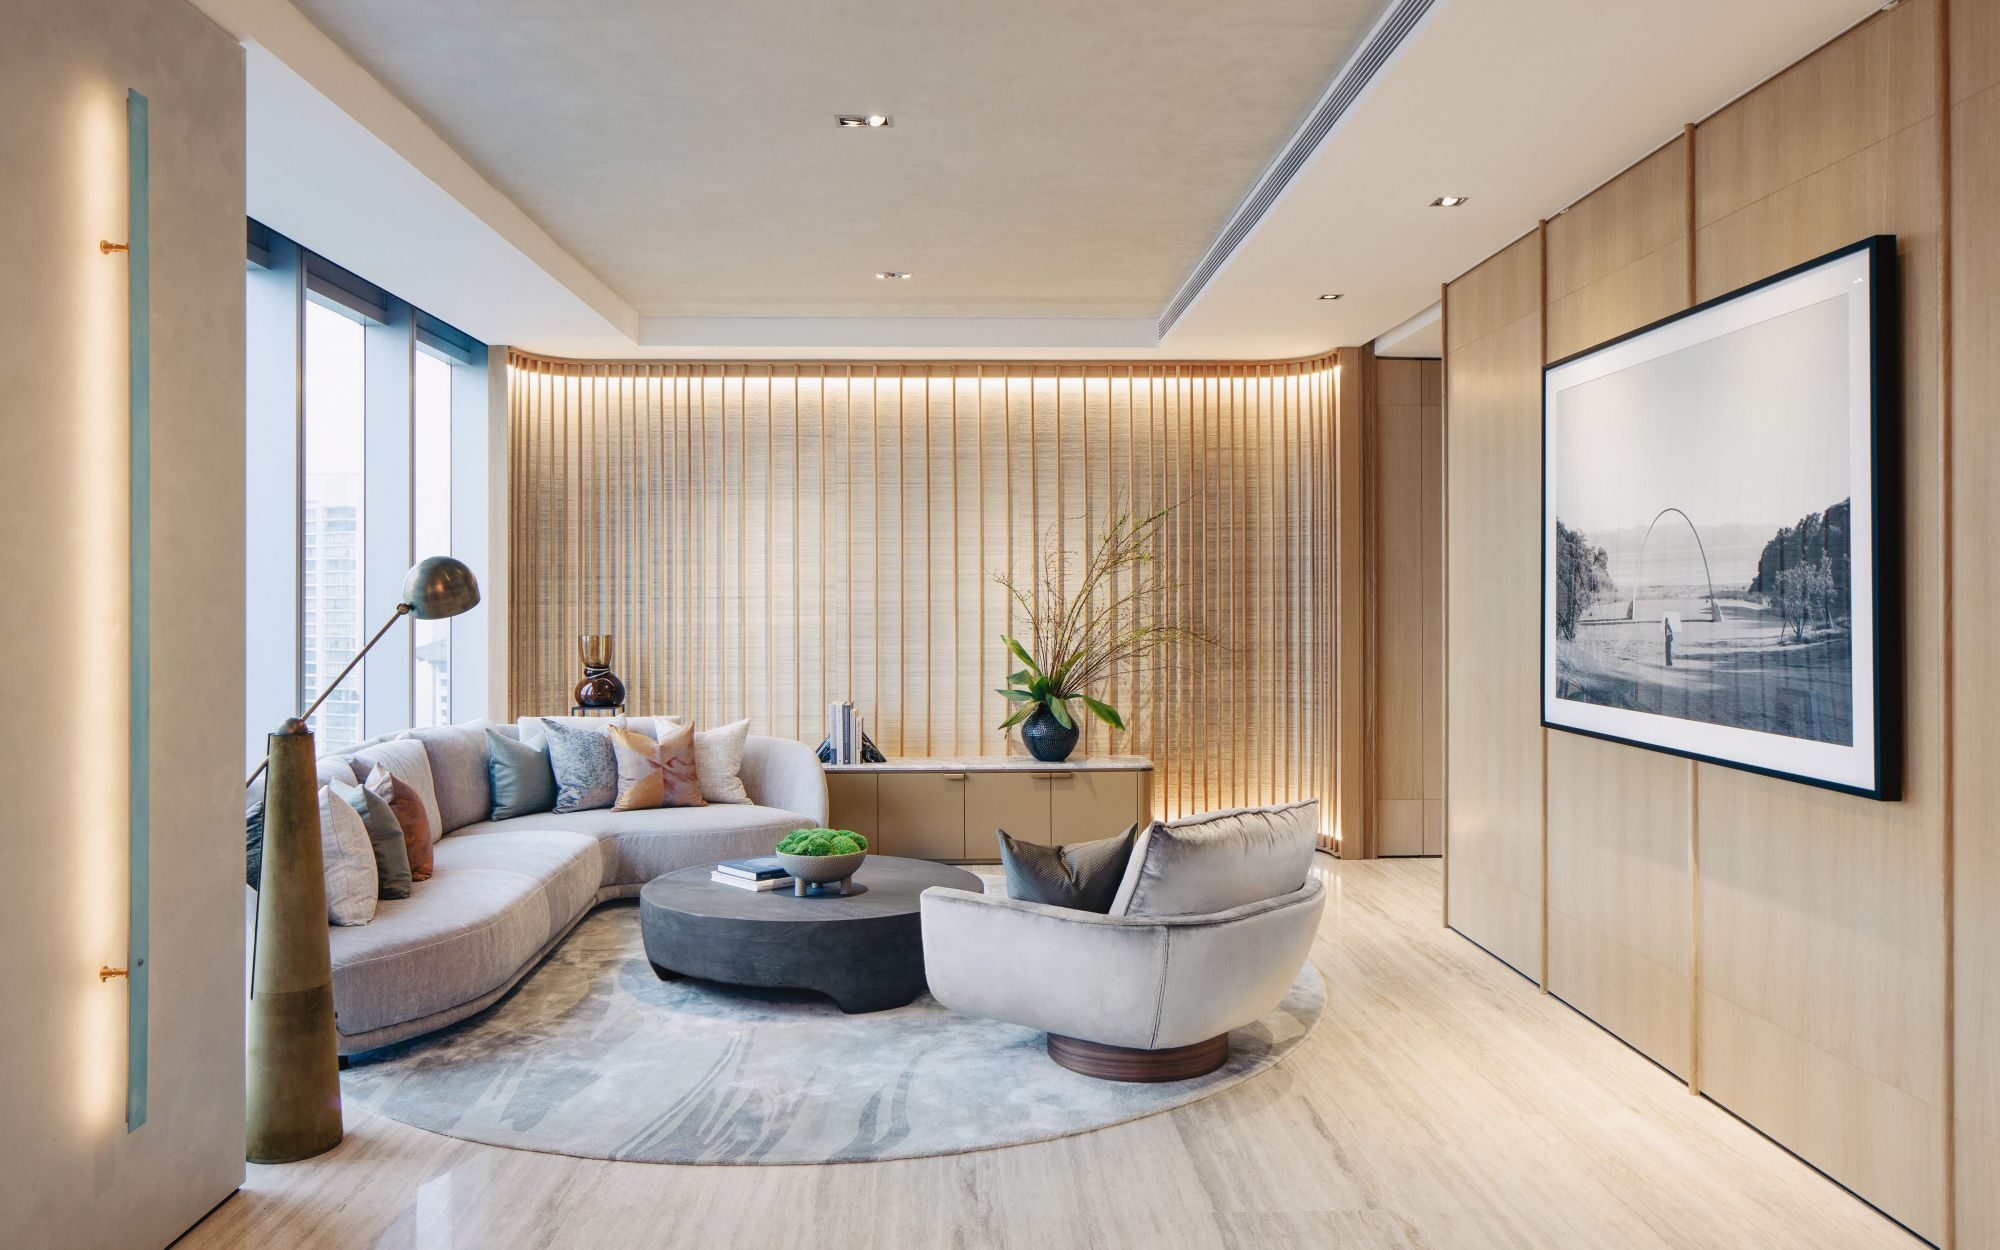 Home Tour: A Japanese-Style Penthouse In Singapore